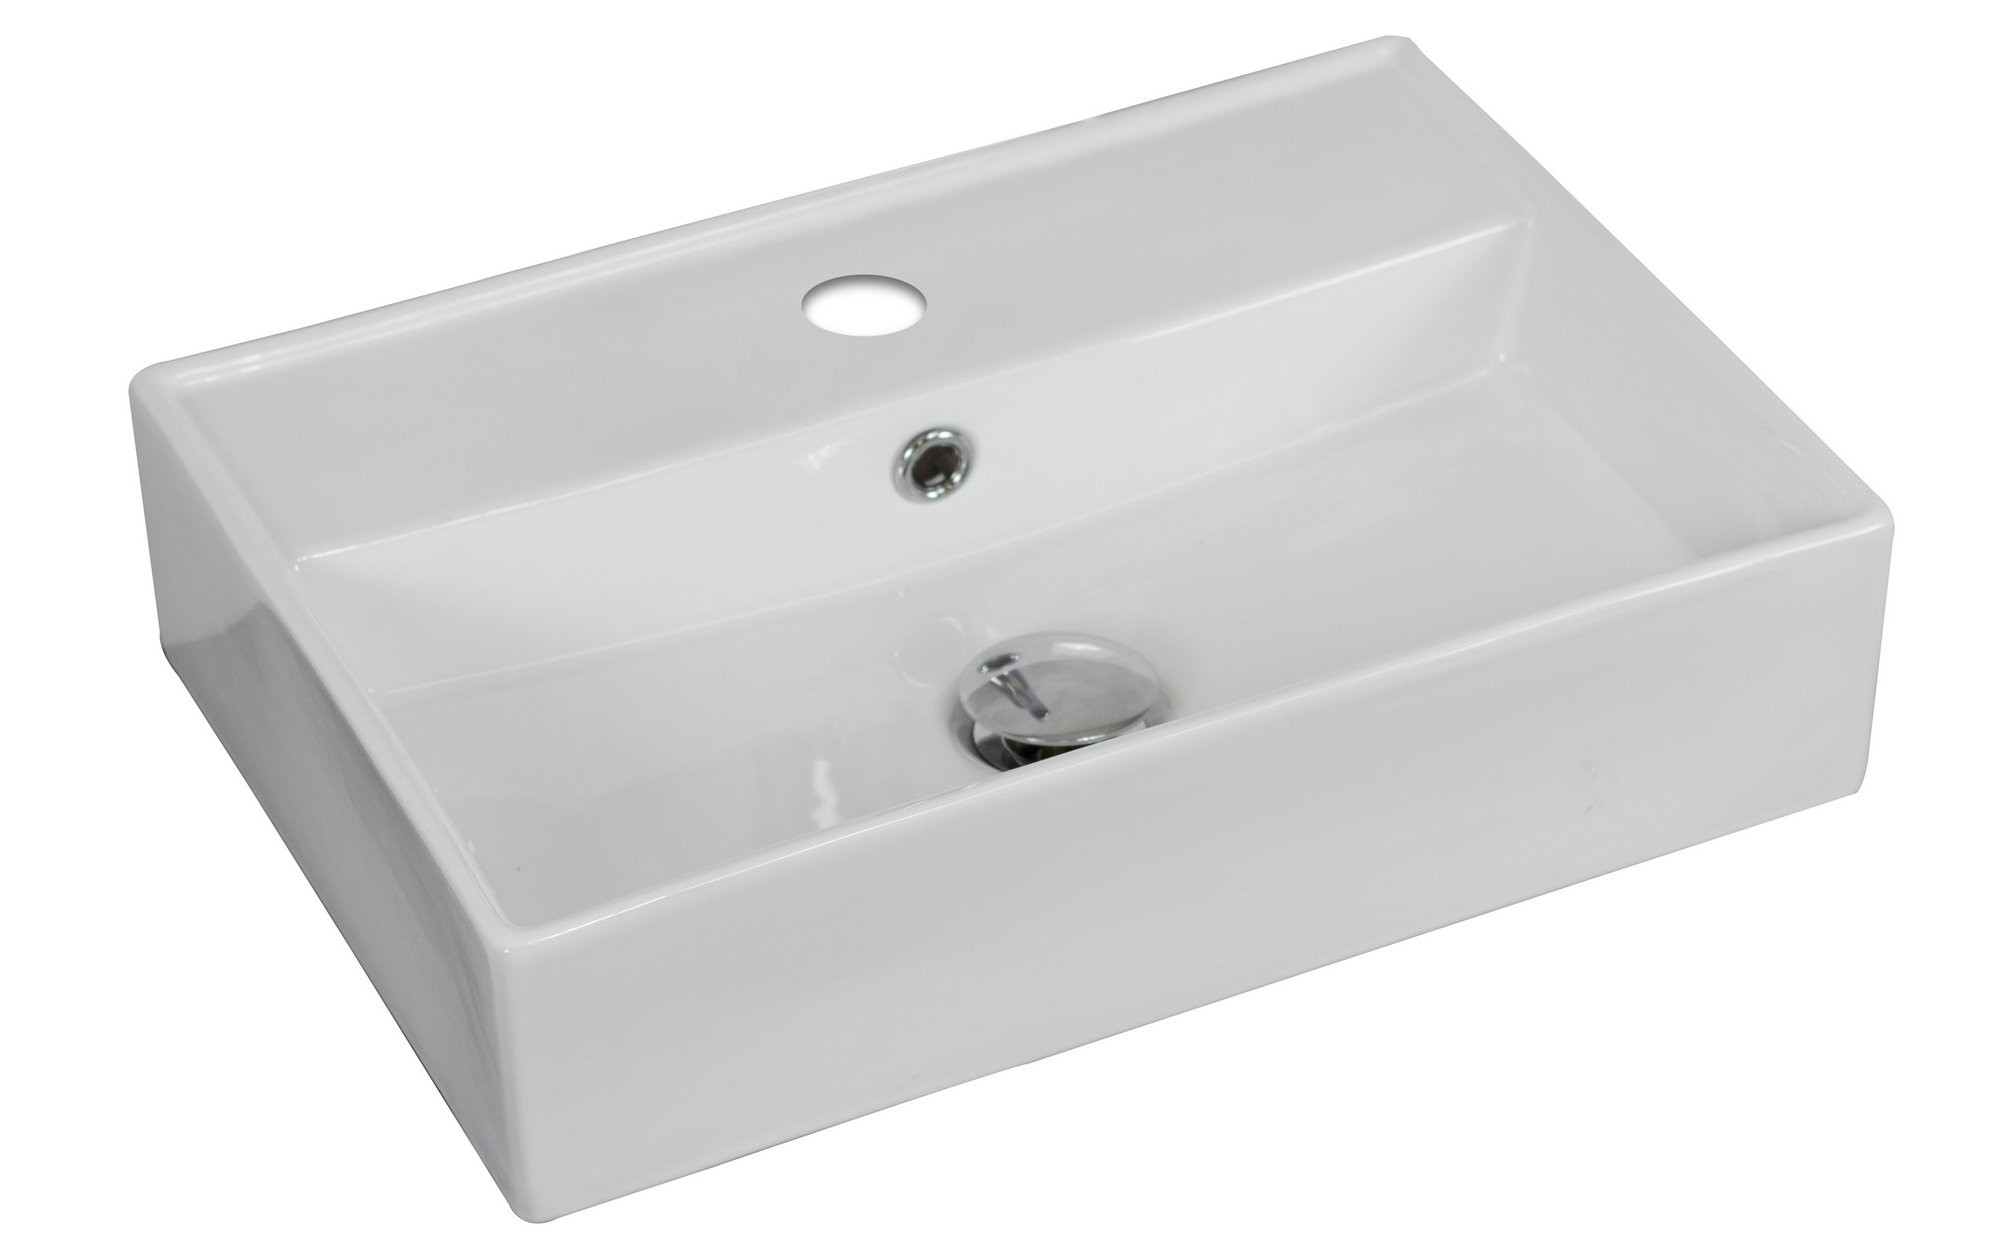 American Imagination AI-1331 Wall Mount Rectangle Vessel In White Color For Single Hole Faucet